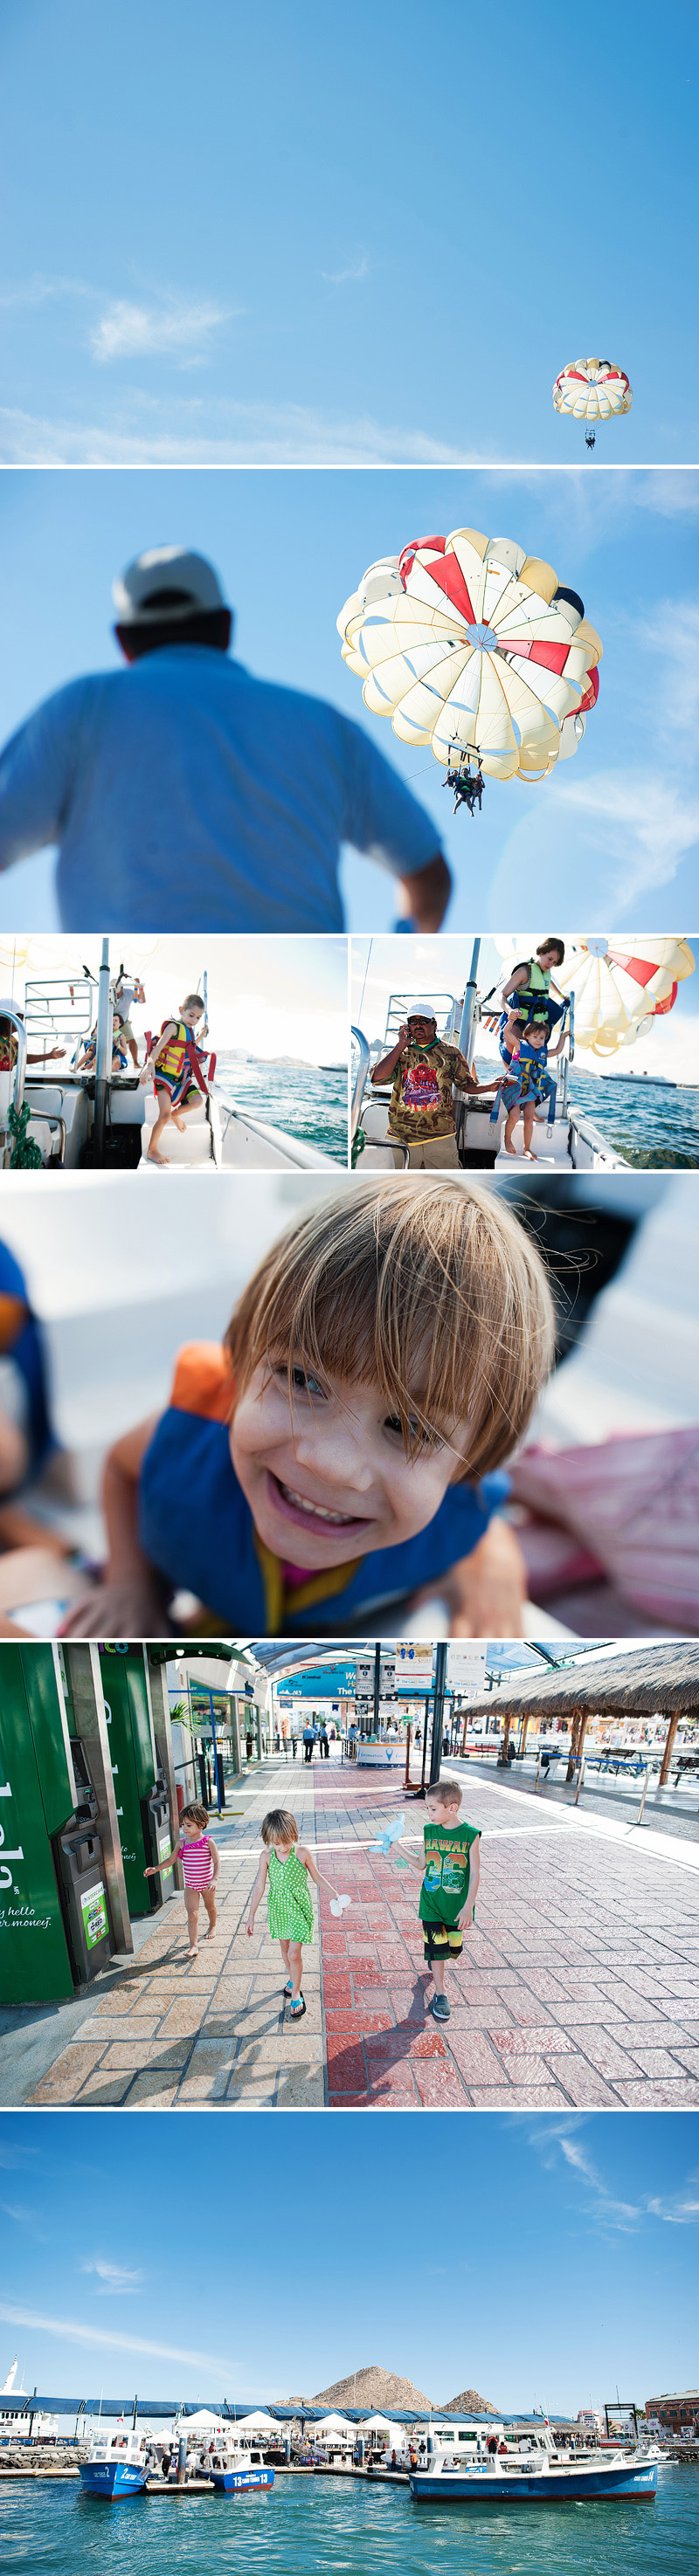 kids in mexico parasailing